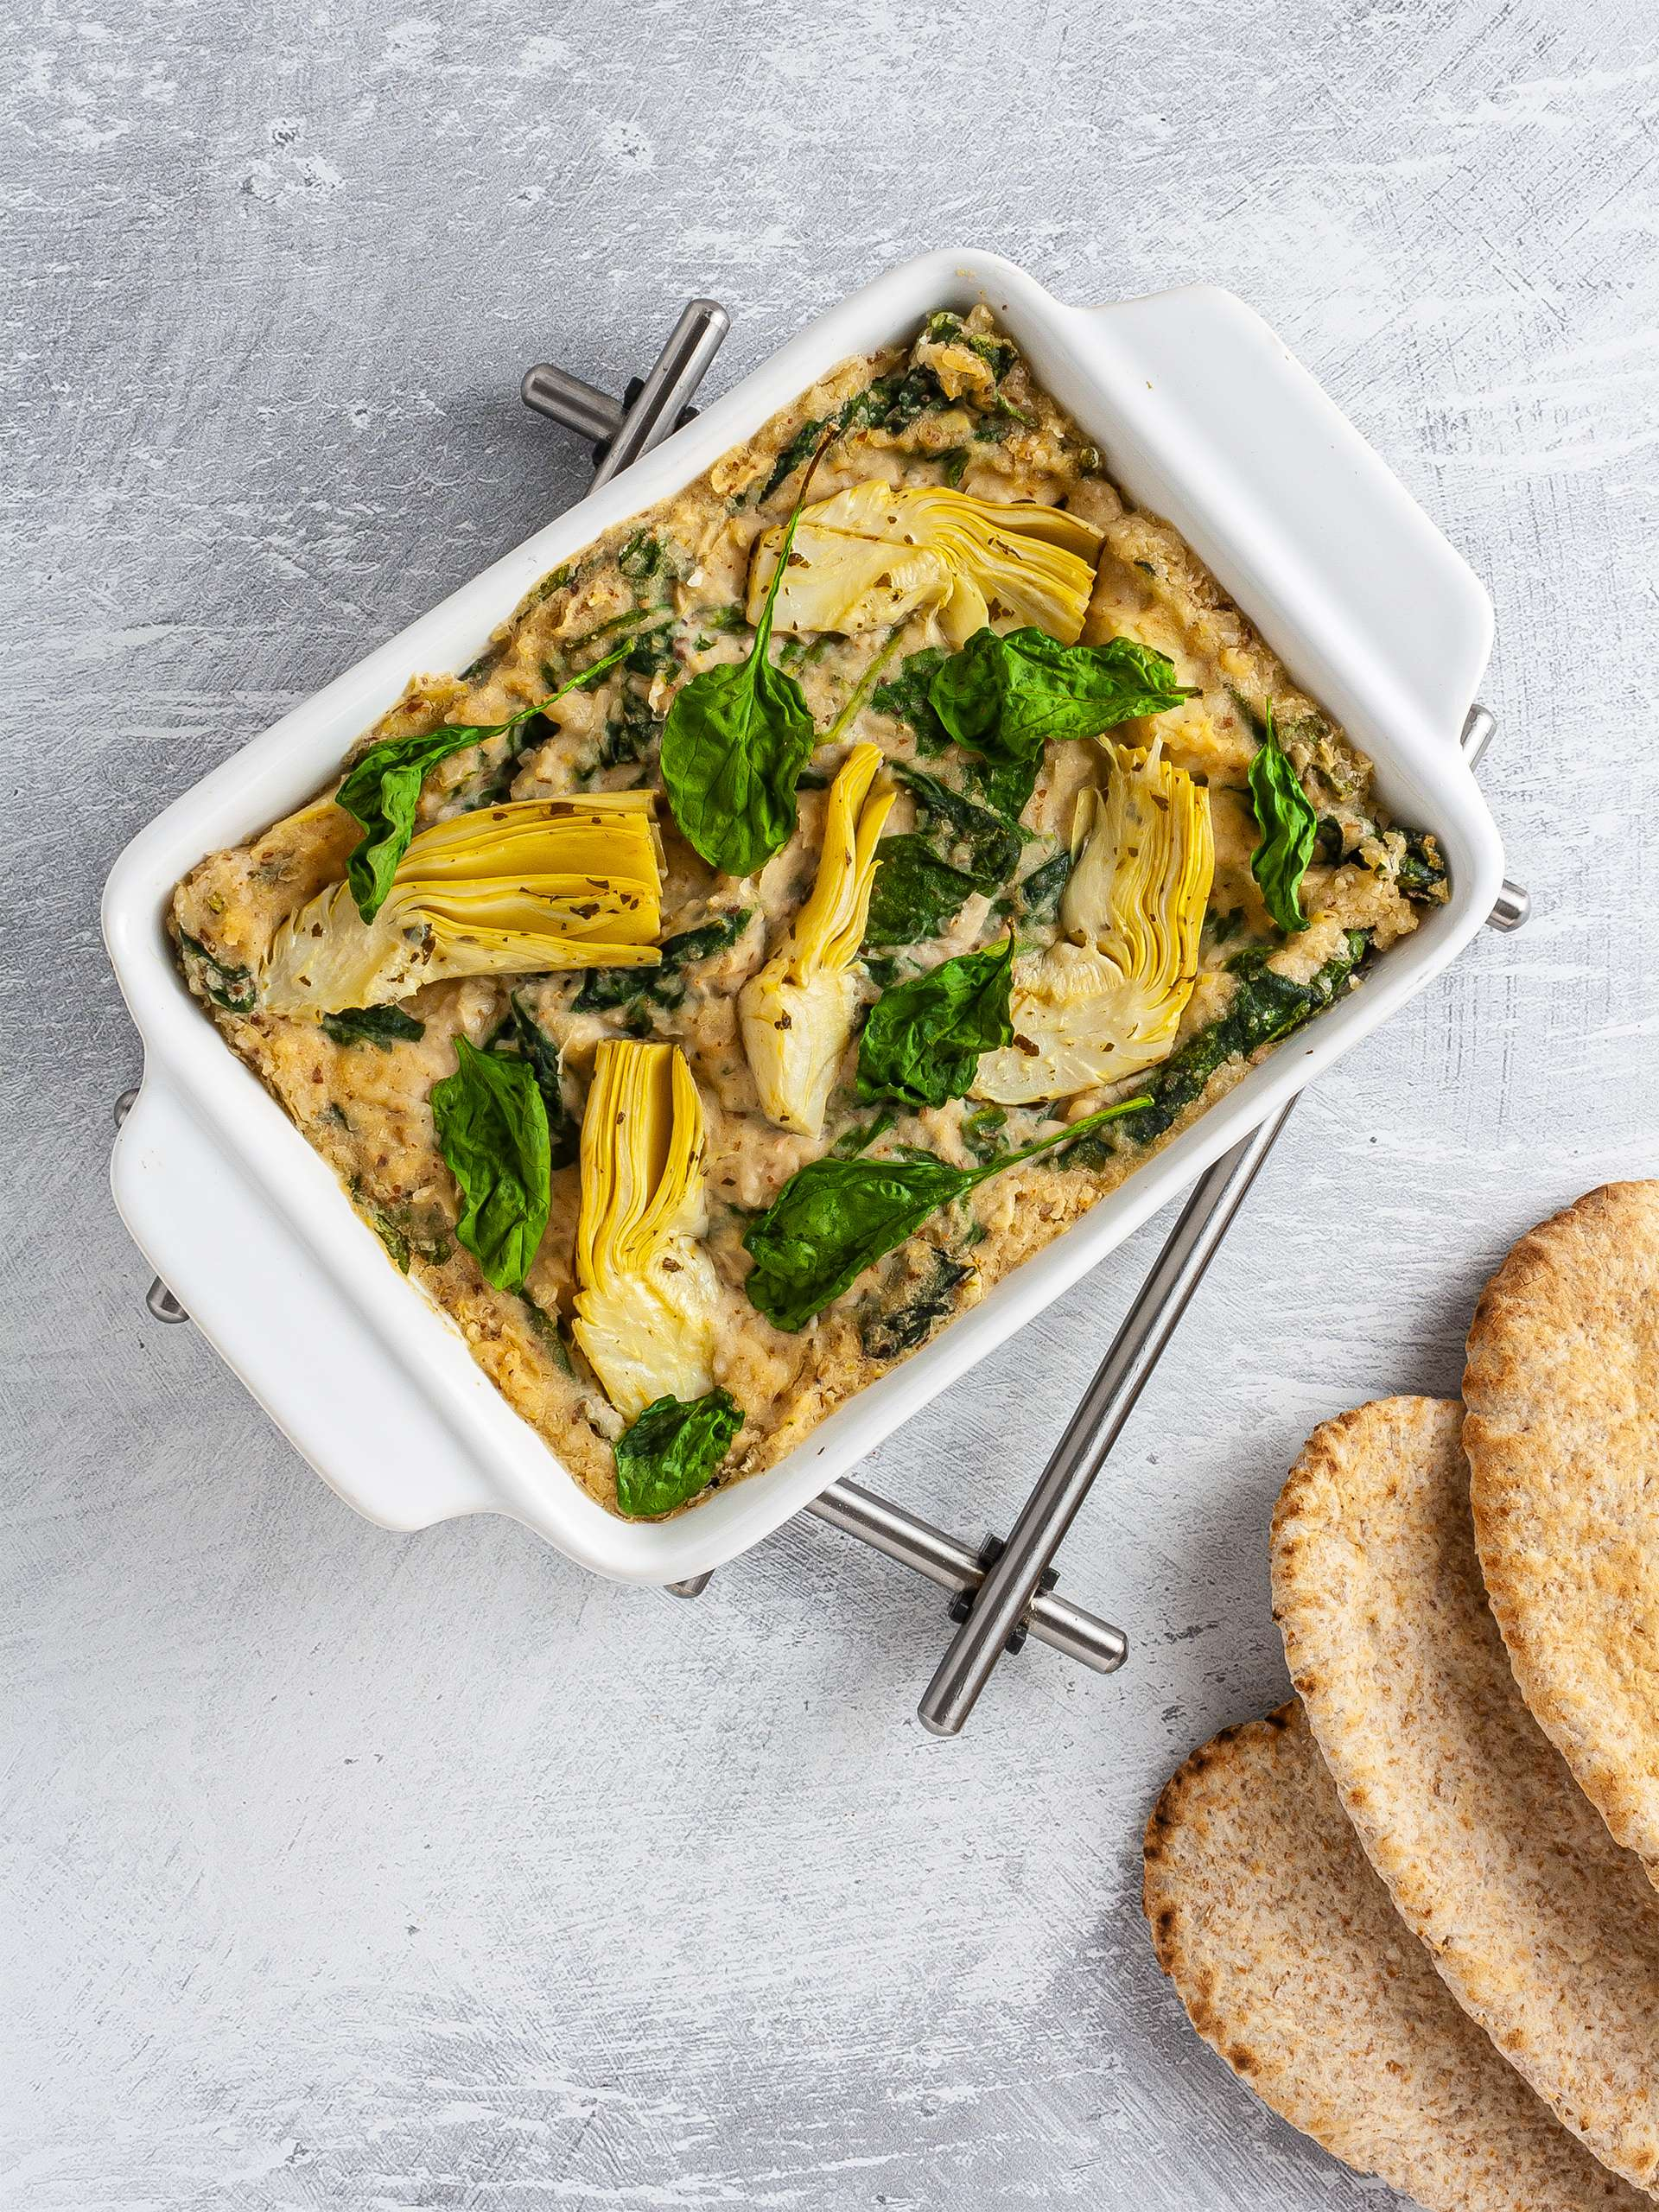 Baked spinach artichoke dip served with pitta bread.